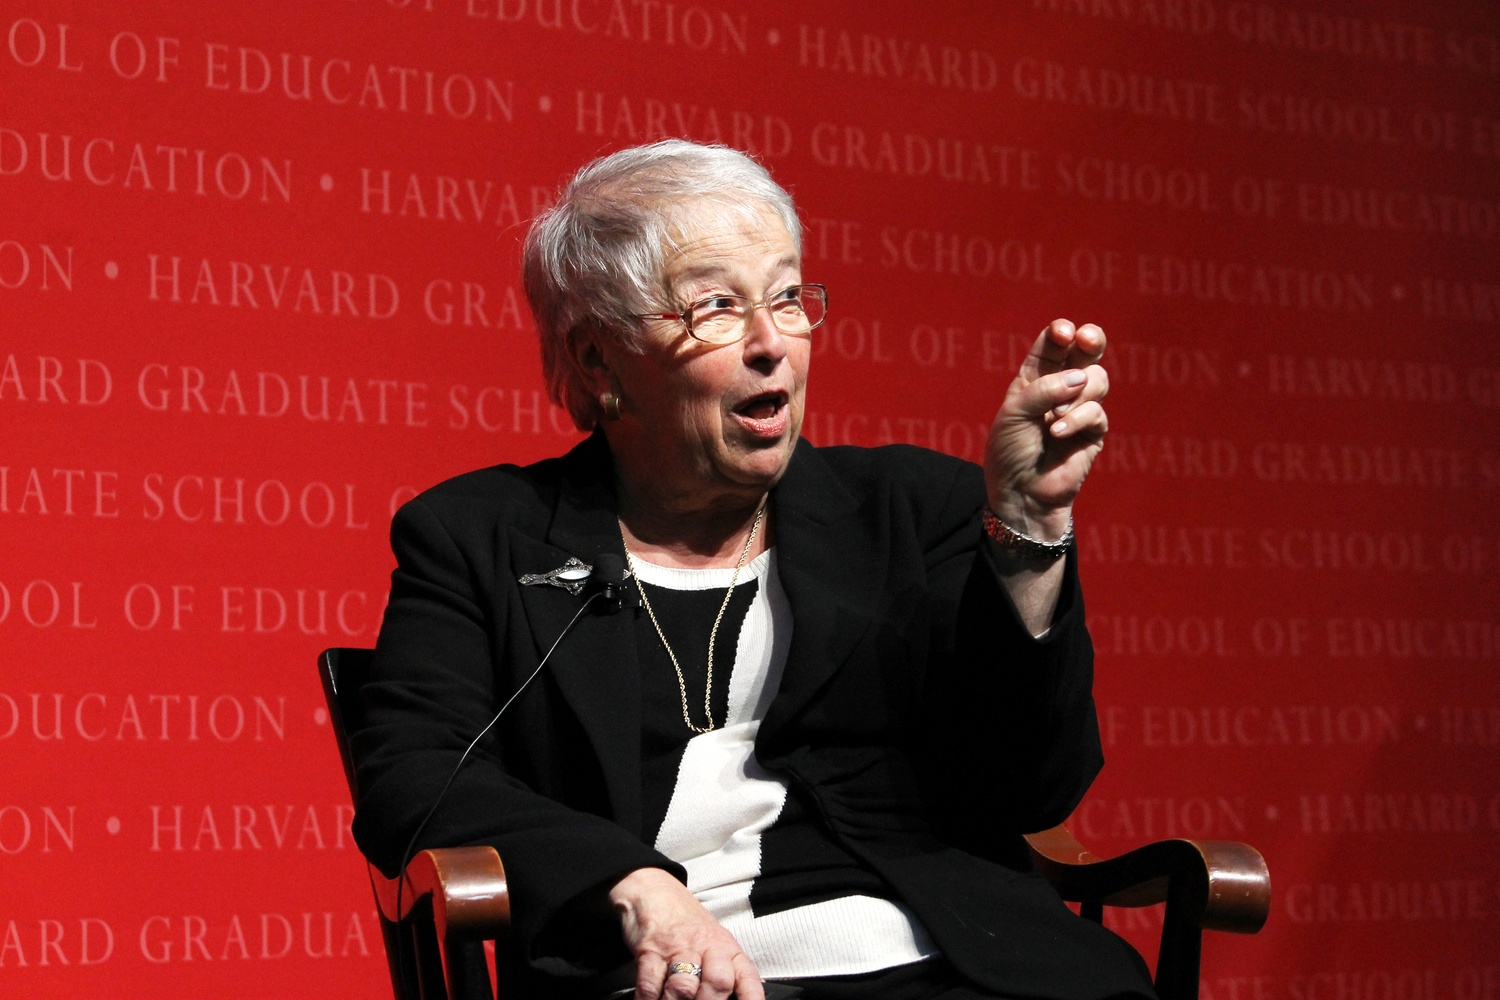 Carmen Fariña, New York City Schools Chancellor, discusses a controversial new admissions process for the city's specialized high schools at the Graduate School of Education's Askwith Forum on Thursday evening.